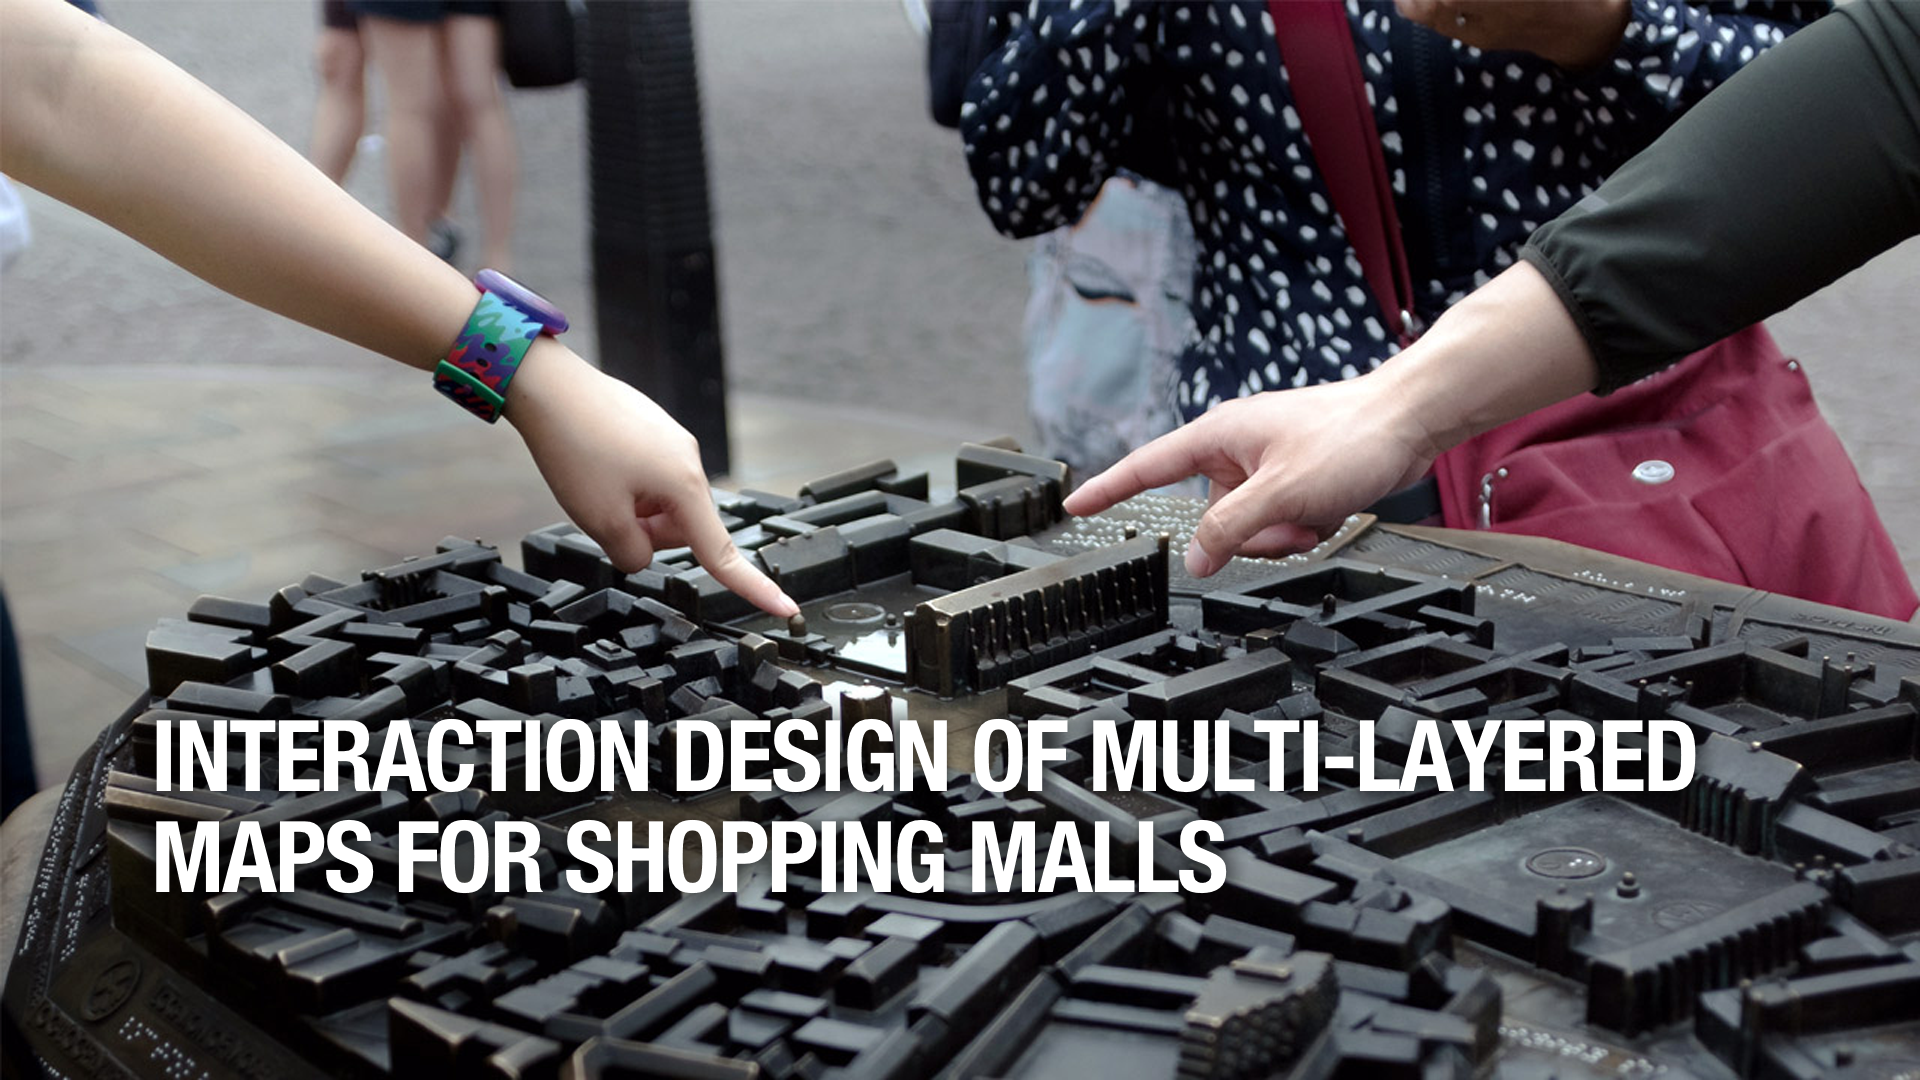 Interaction Design of Multi-Layered Maps for Shopping Malls